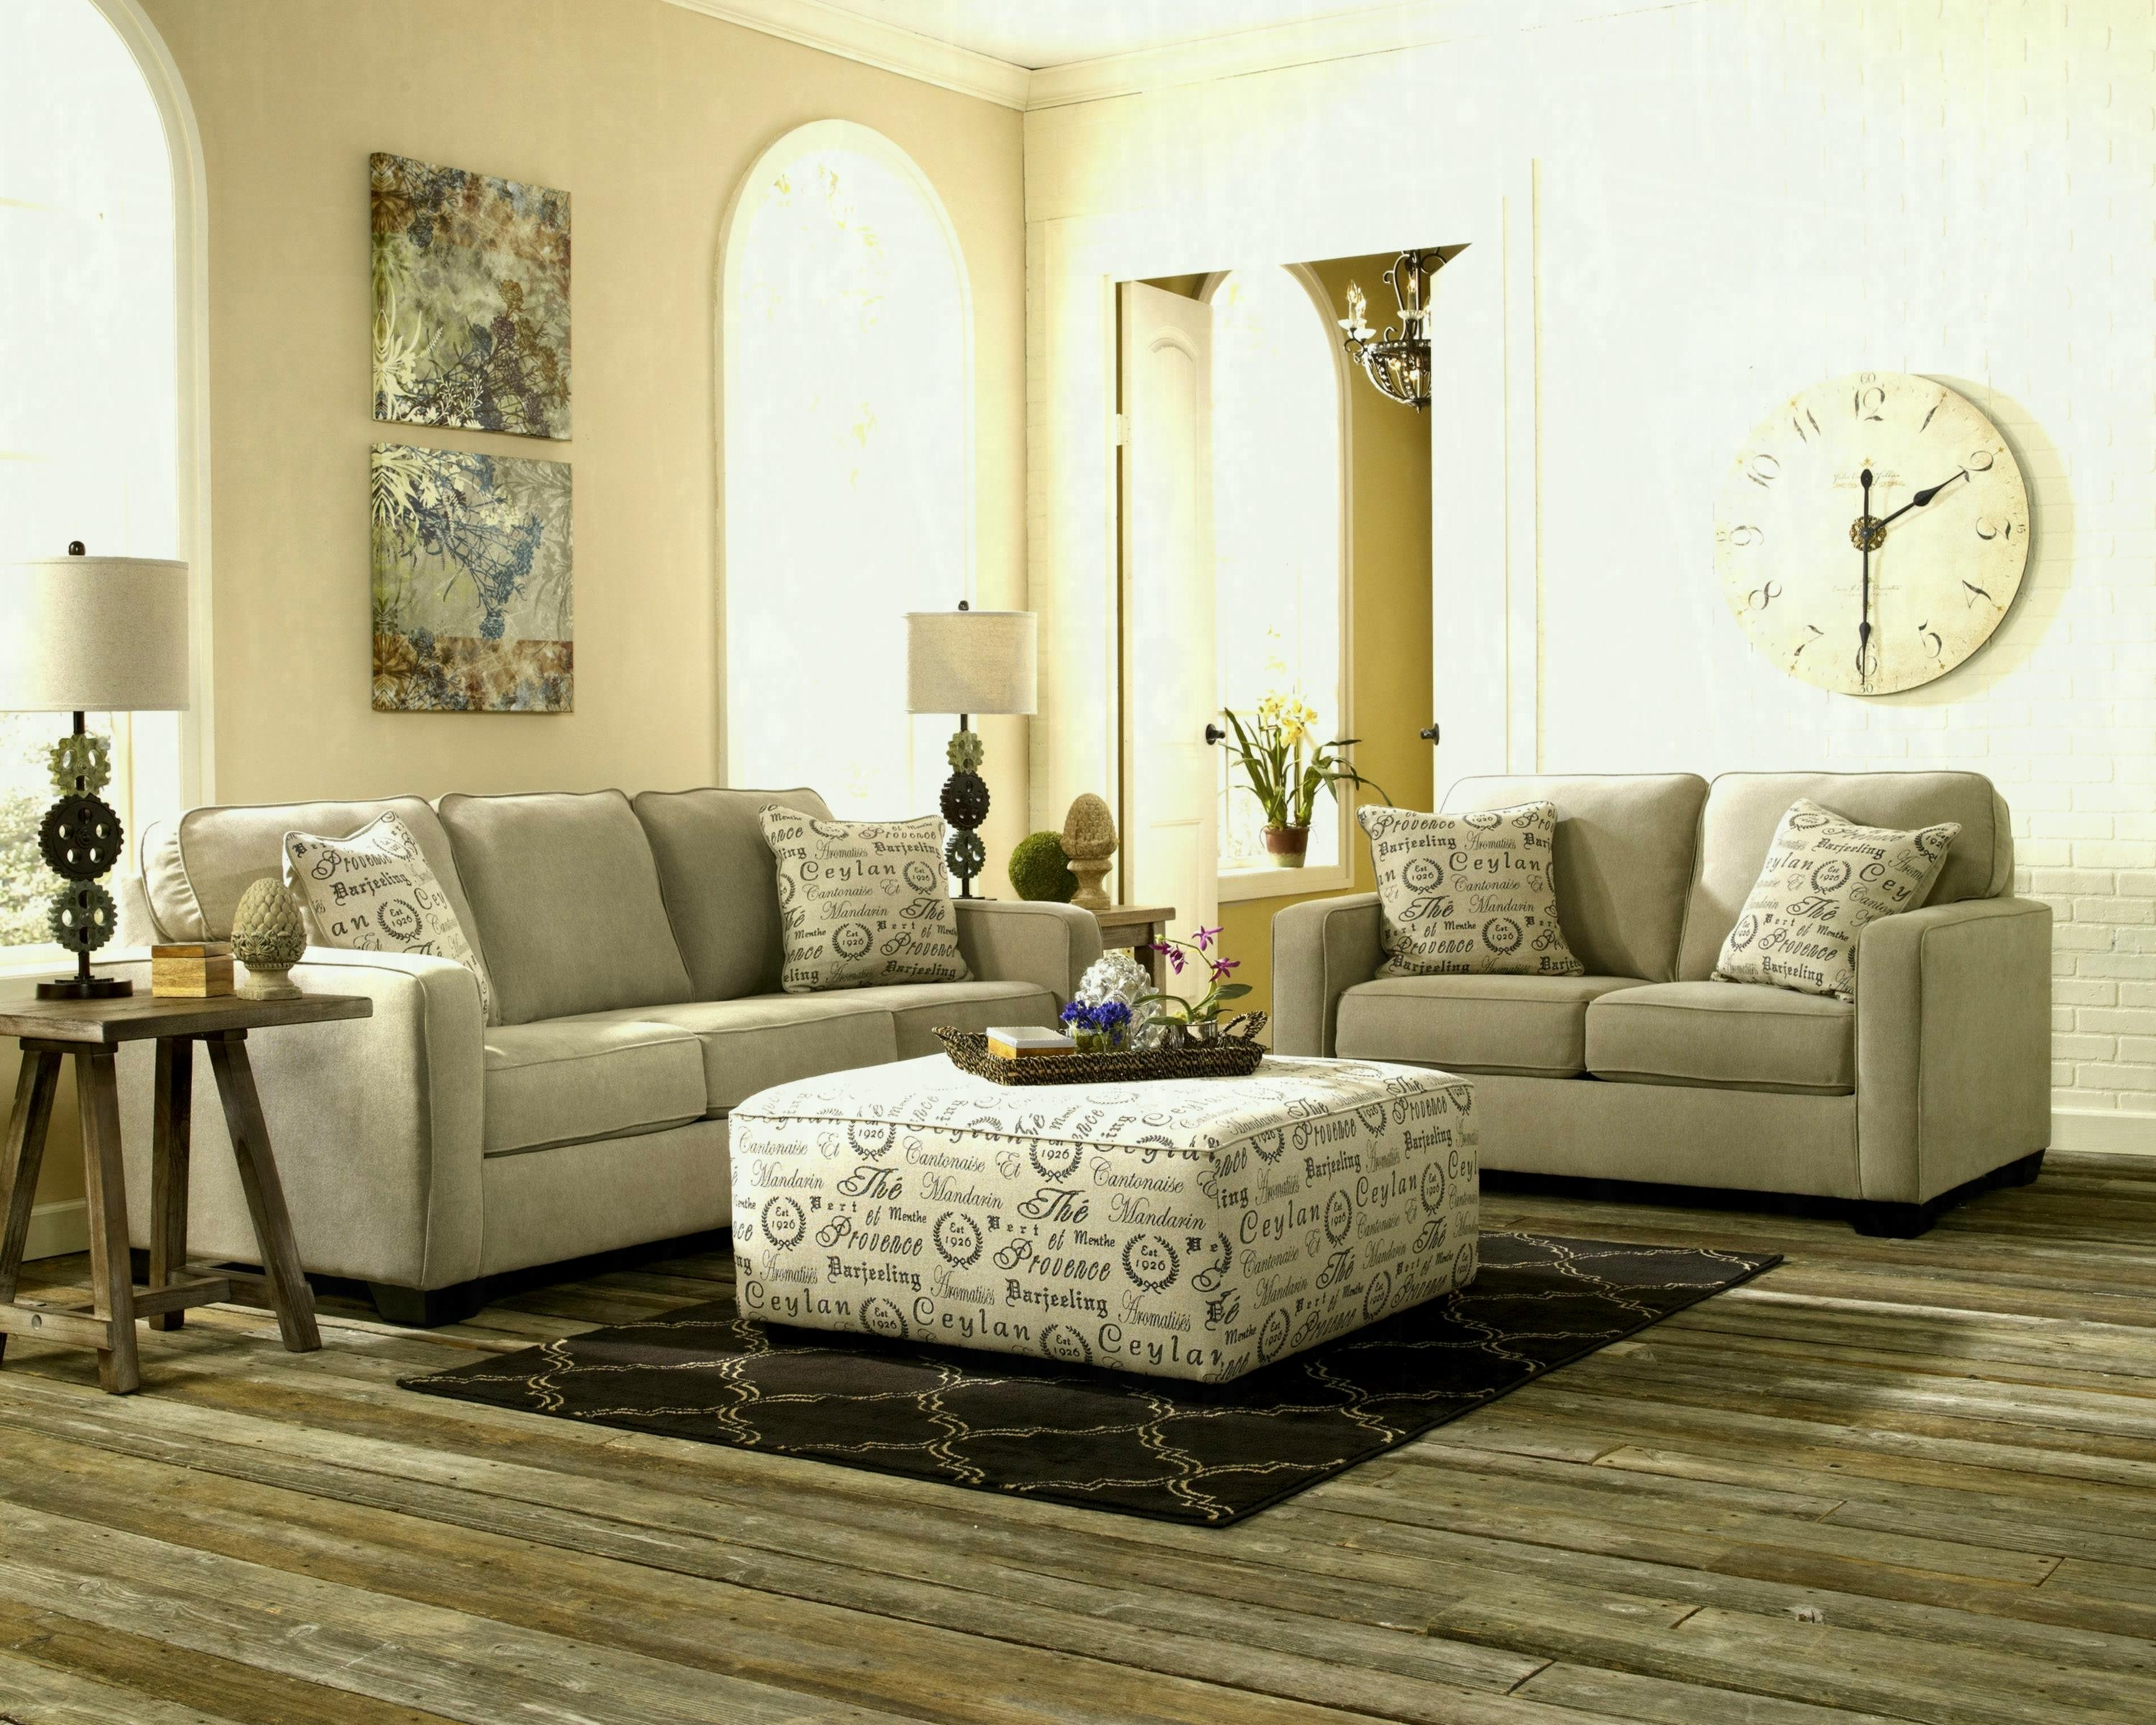 Added To Cart Aquarius Light Grey Piece Sectional W Raf Chaise within Aquarius Light Grey 2 Piece Sectionals With Raf Chaise (Image 6 of 30)